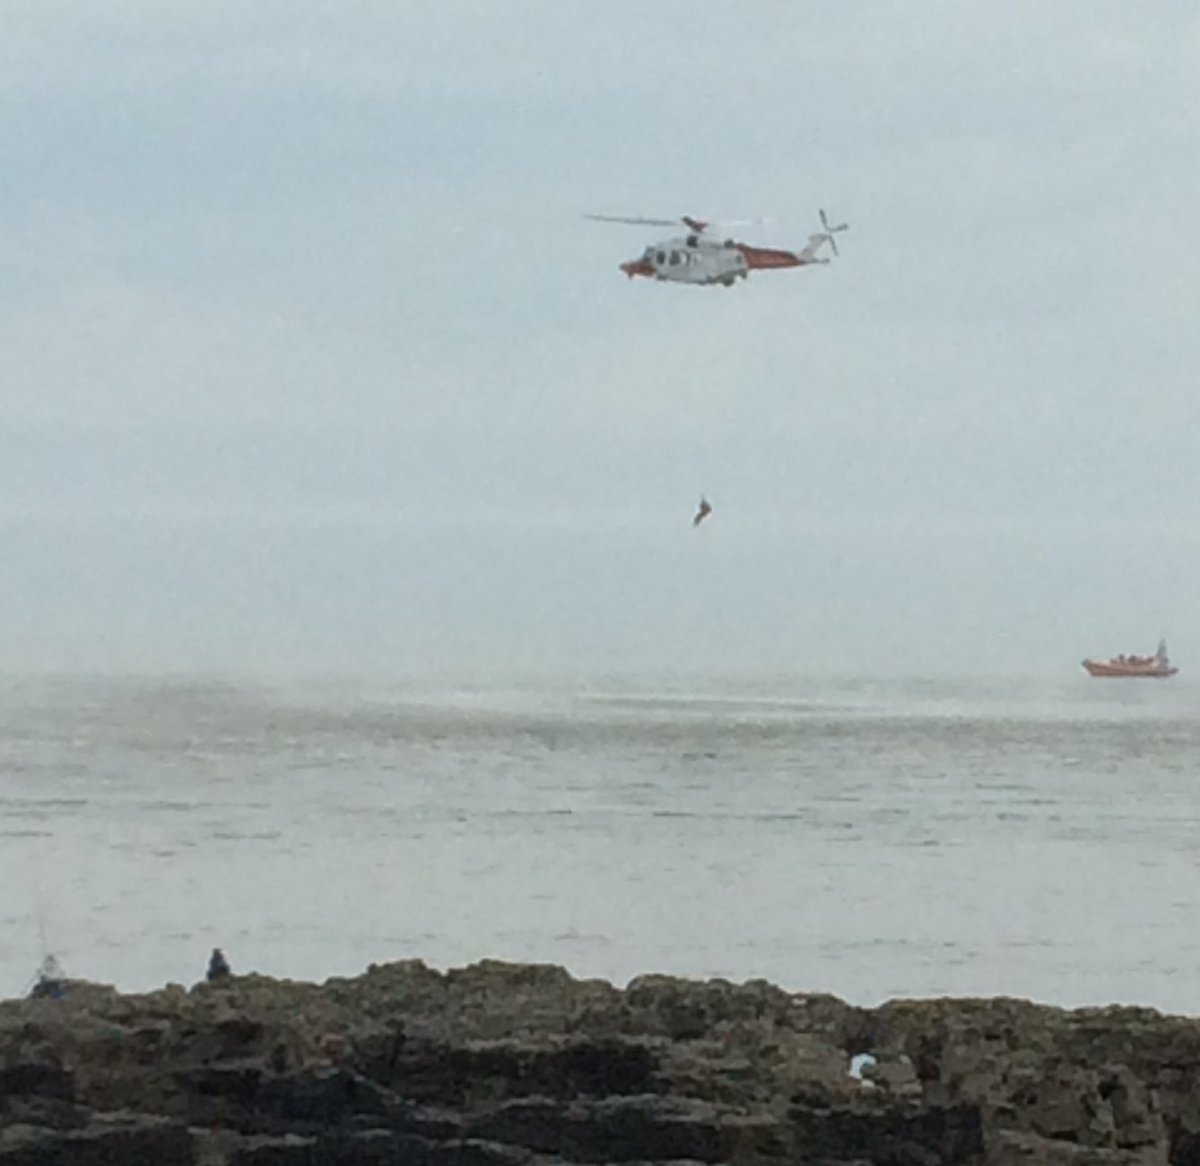 Porthcawl.  Training exercises. Yeah, cool. https://t.co/VT01WCIvFi